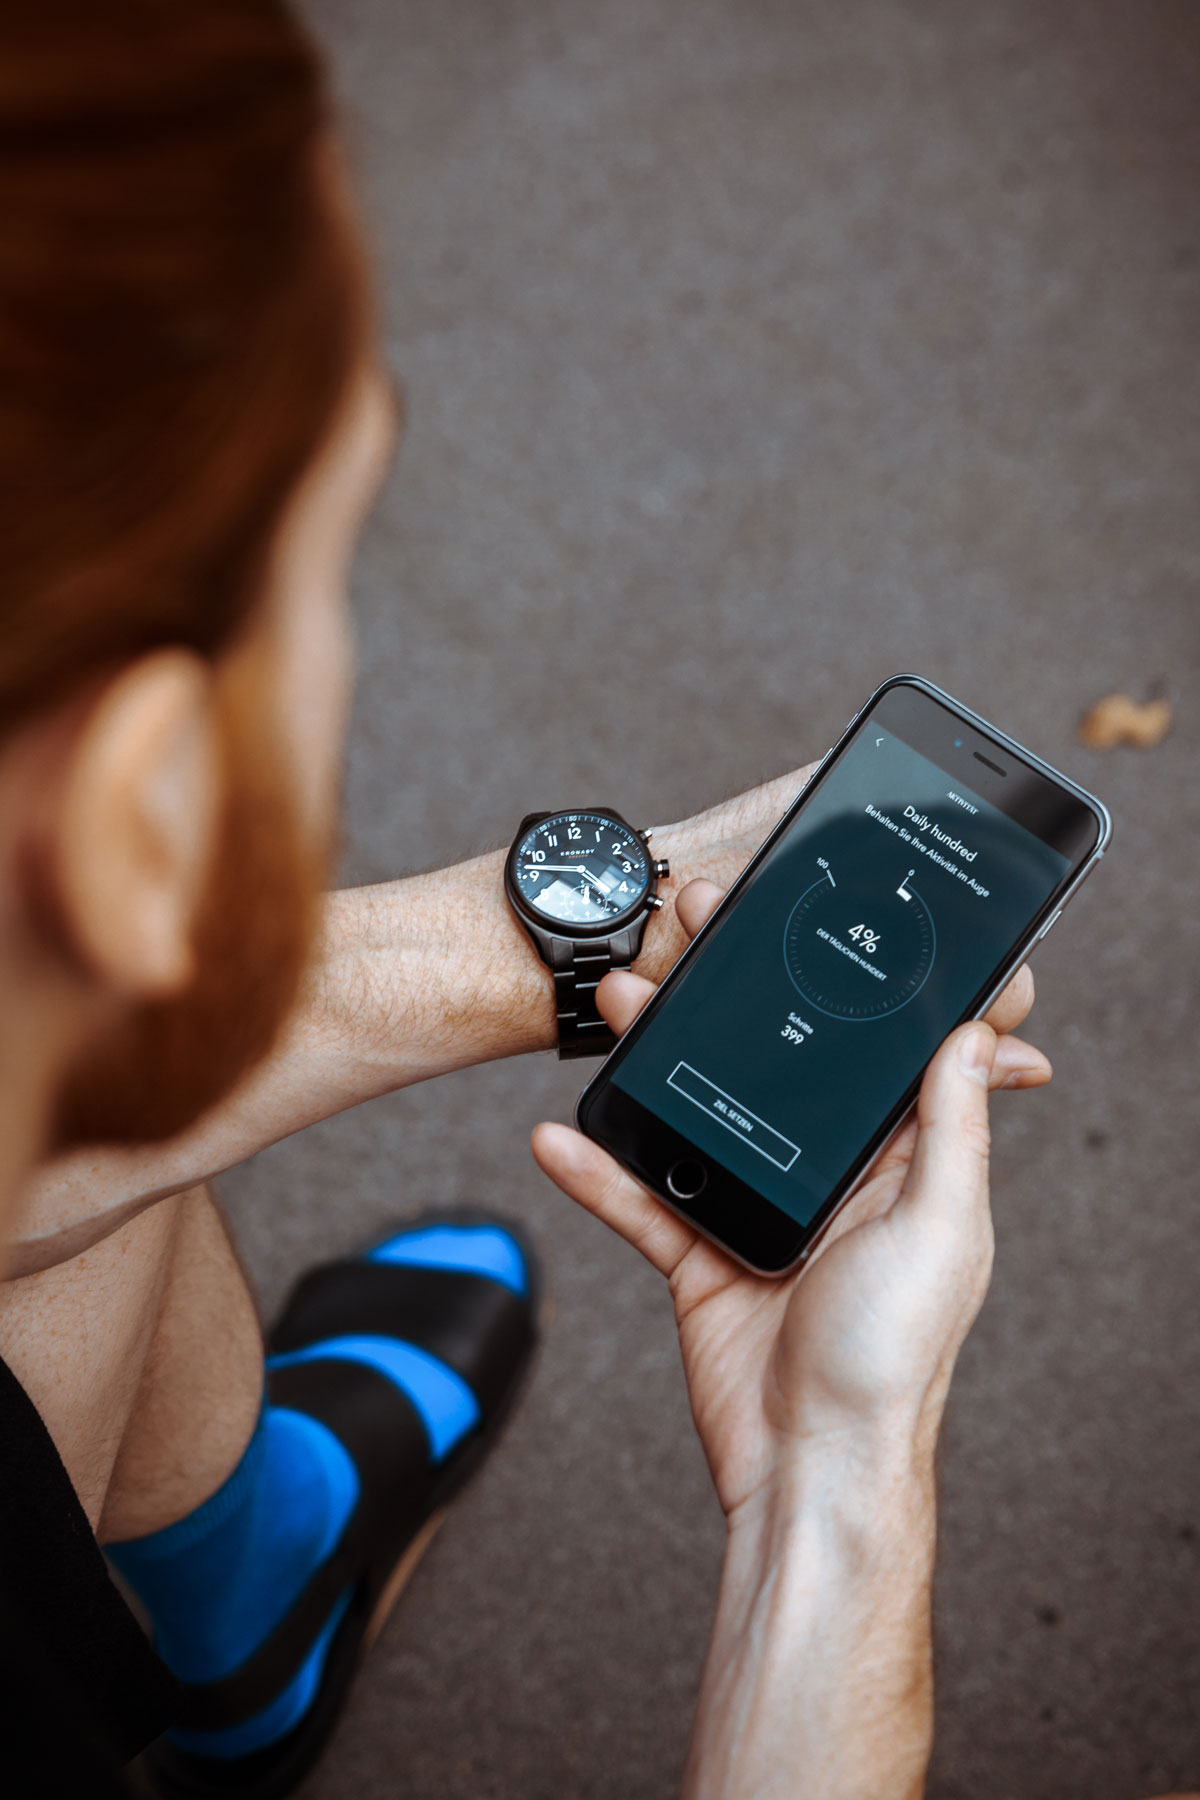 Lifestyle-Blog-Maenner-Smartwatch-Kronaby-Test-Bericht-iPhone-App